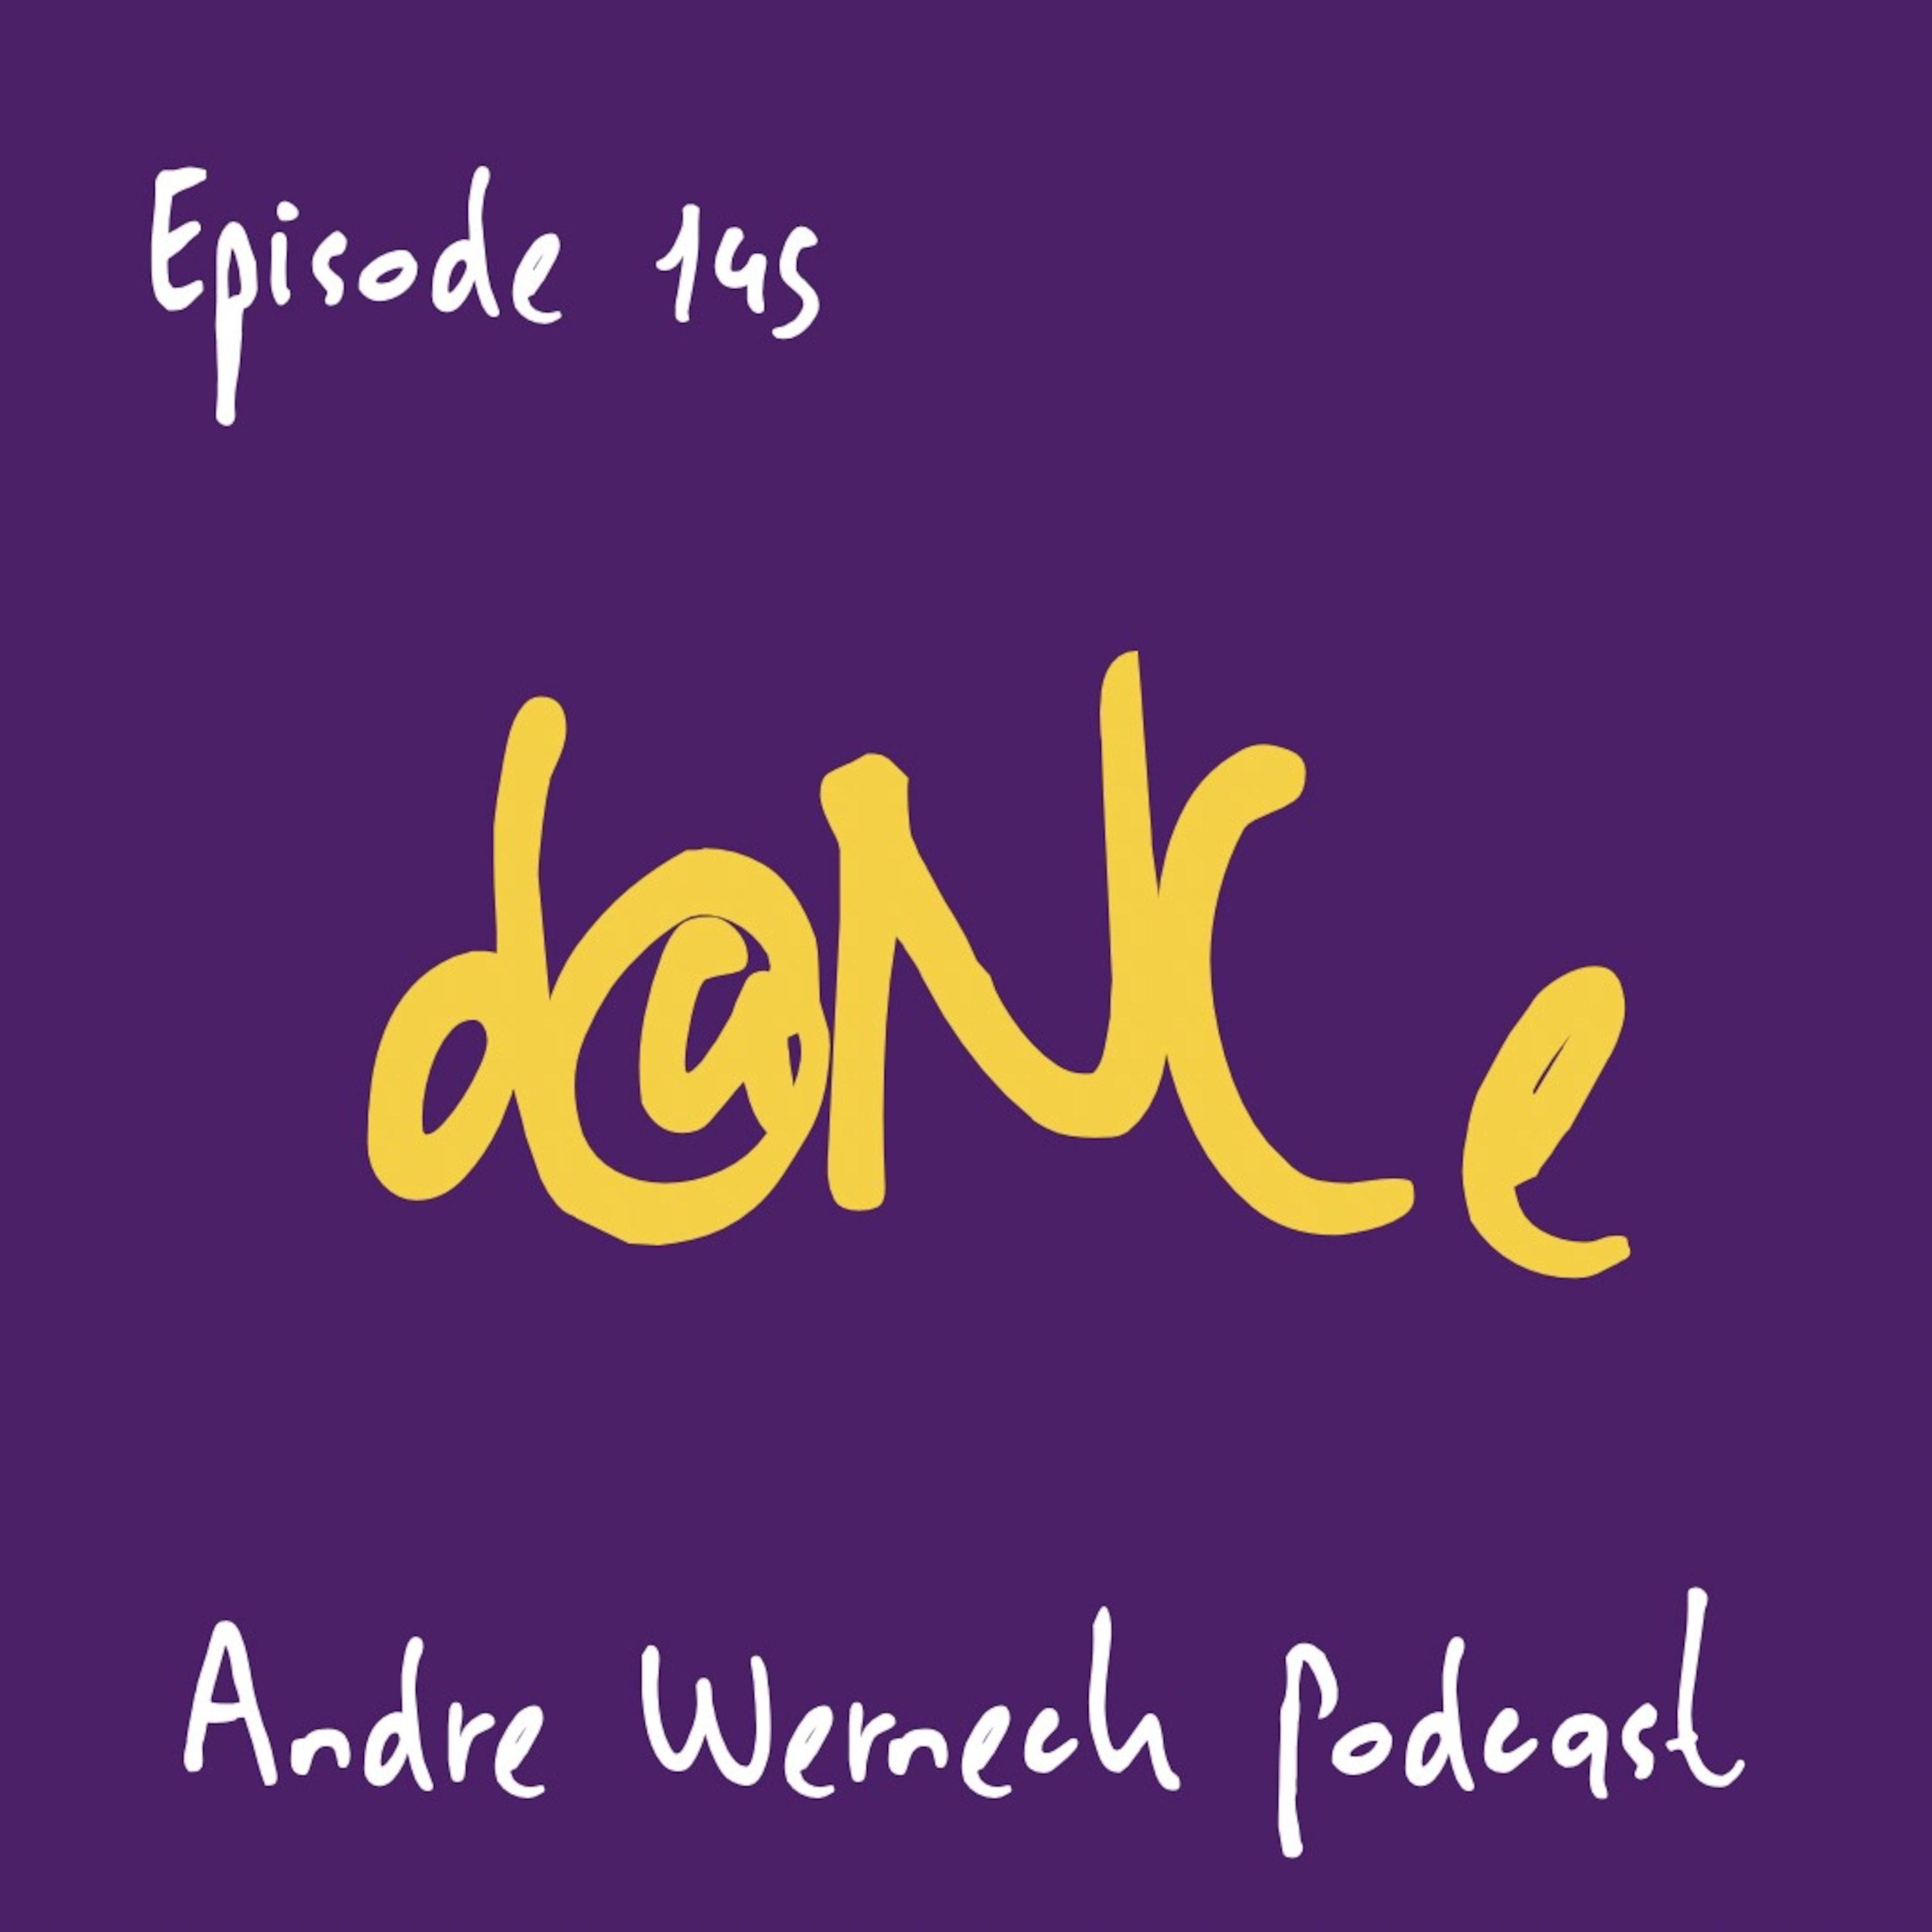 Episode 145 - D@NCE